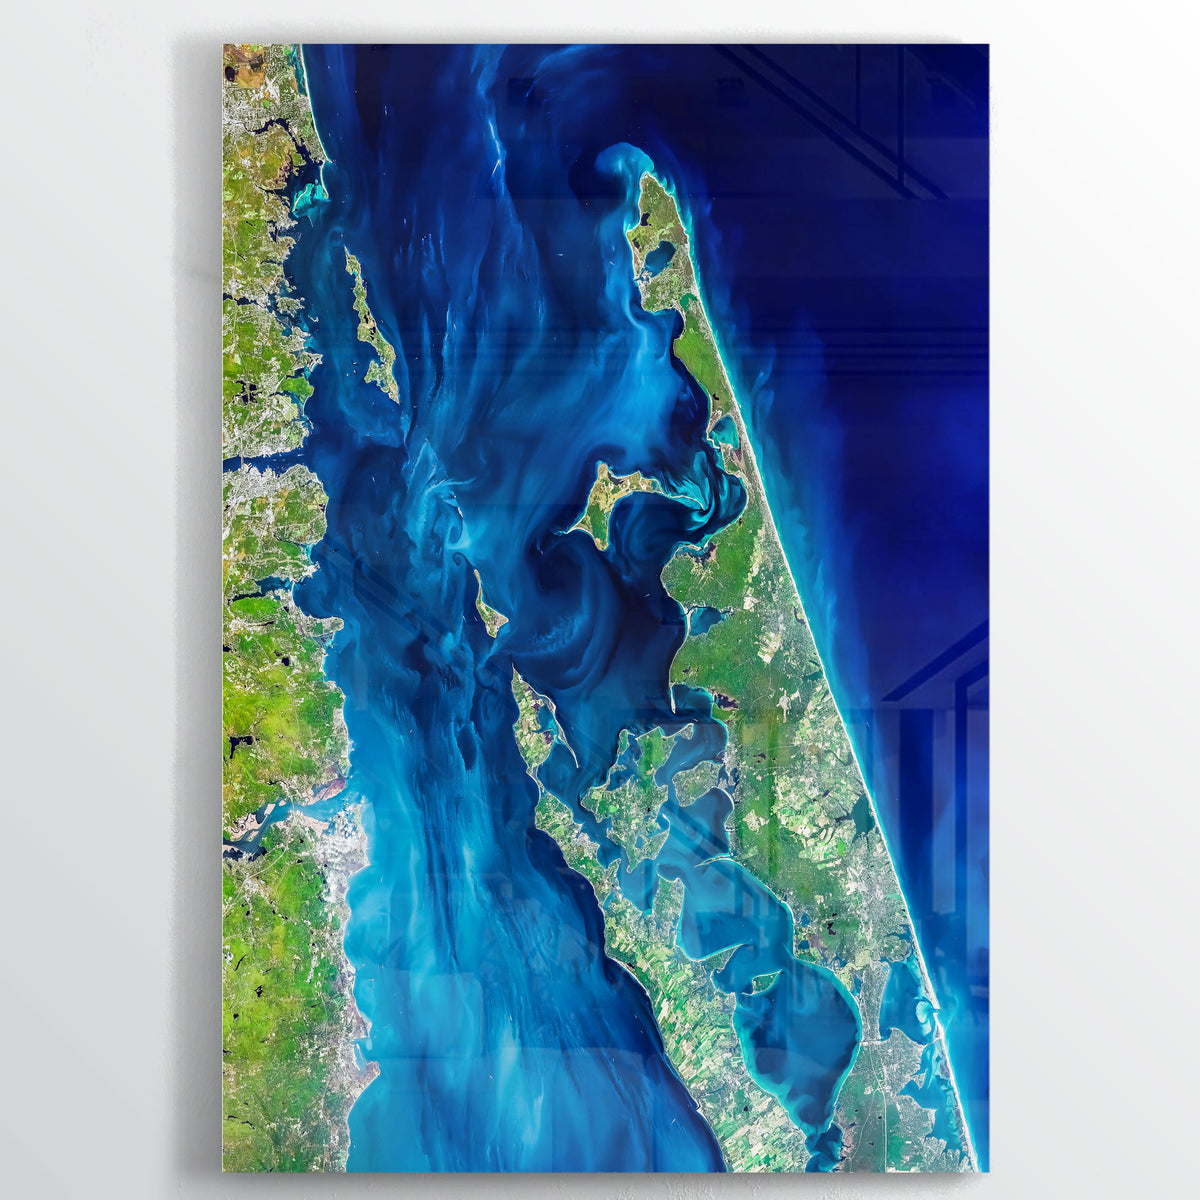 Long Island Earth Photography - Floating Acrylic Art